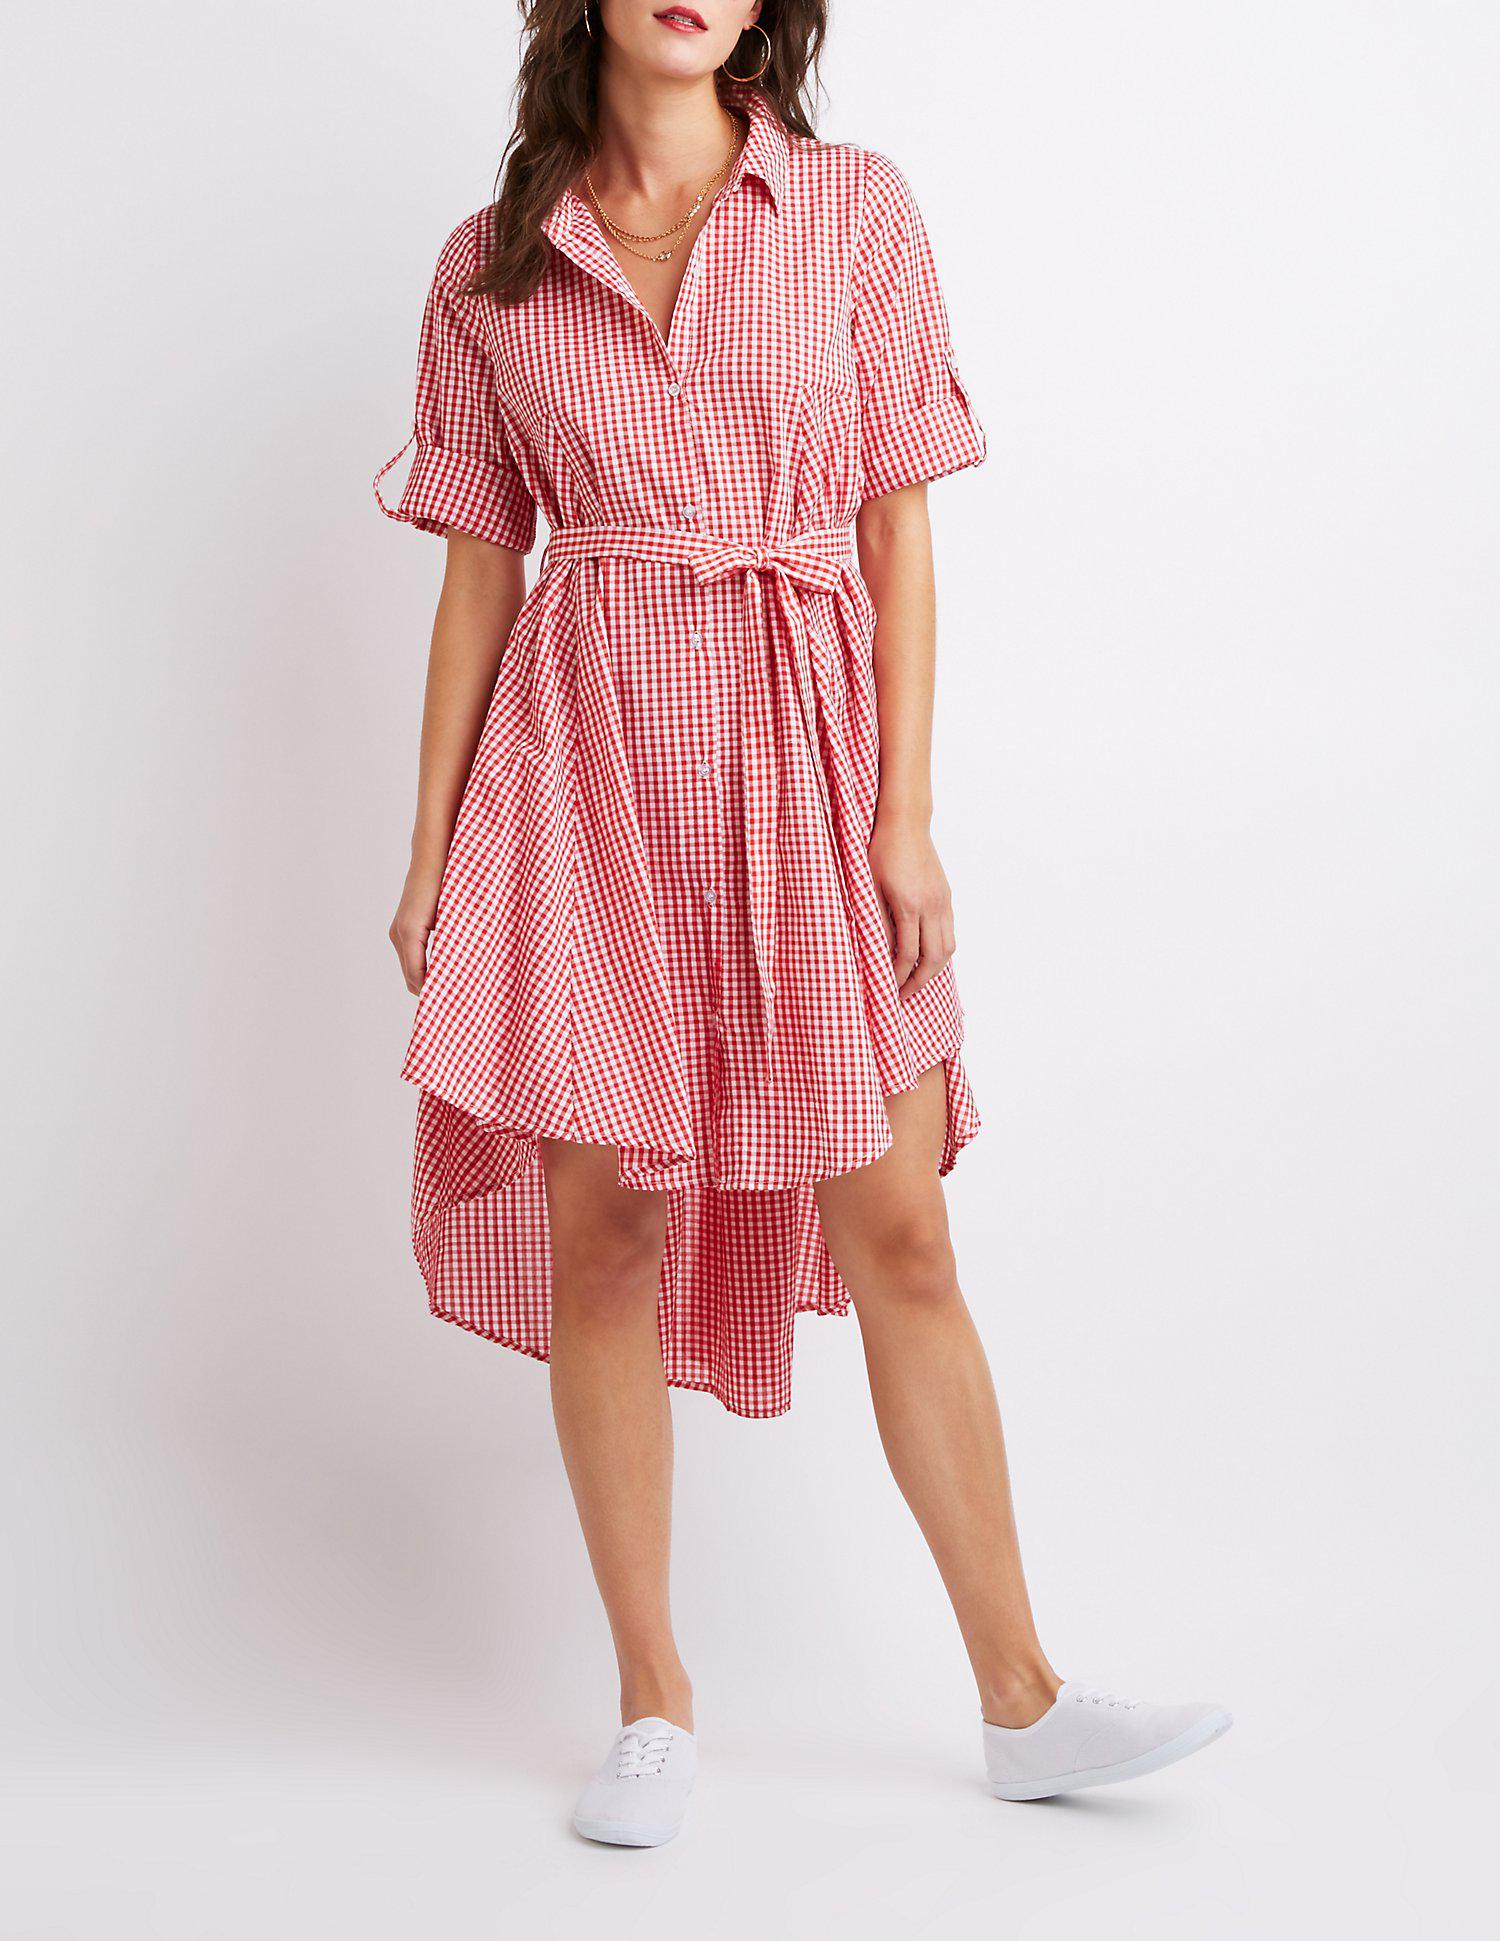 cc365faff2c Lyst - Charlotte Russe Gingham Print High-low Dress in Red